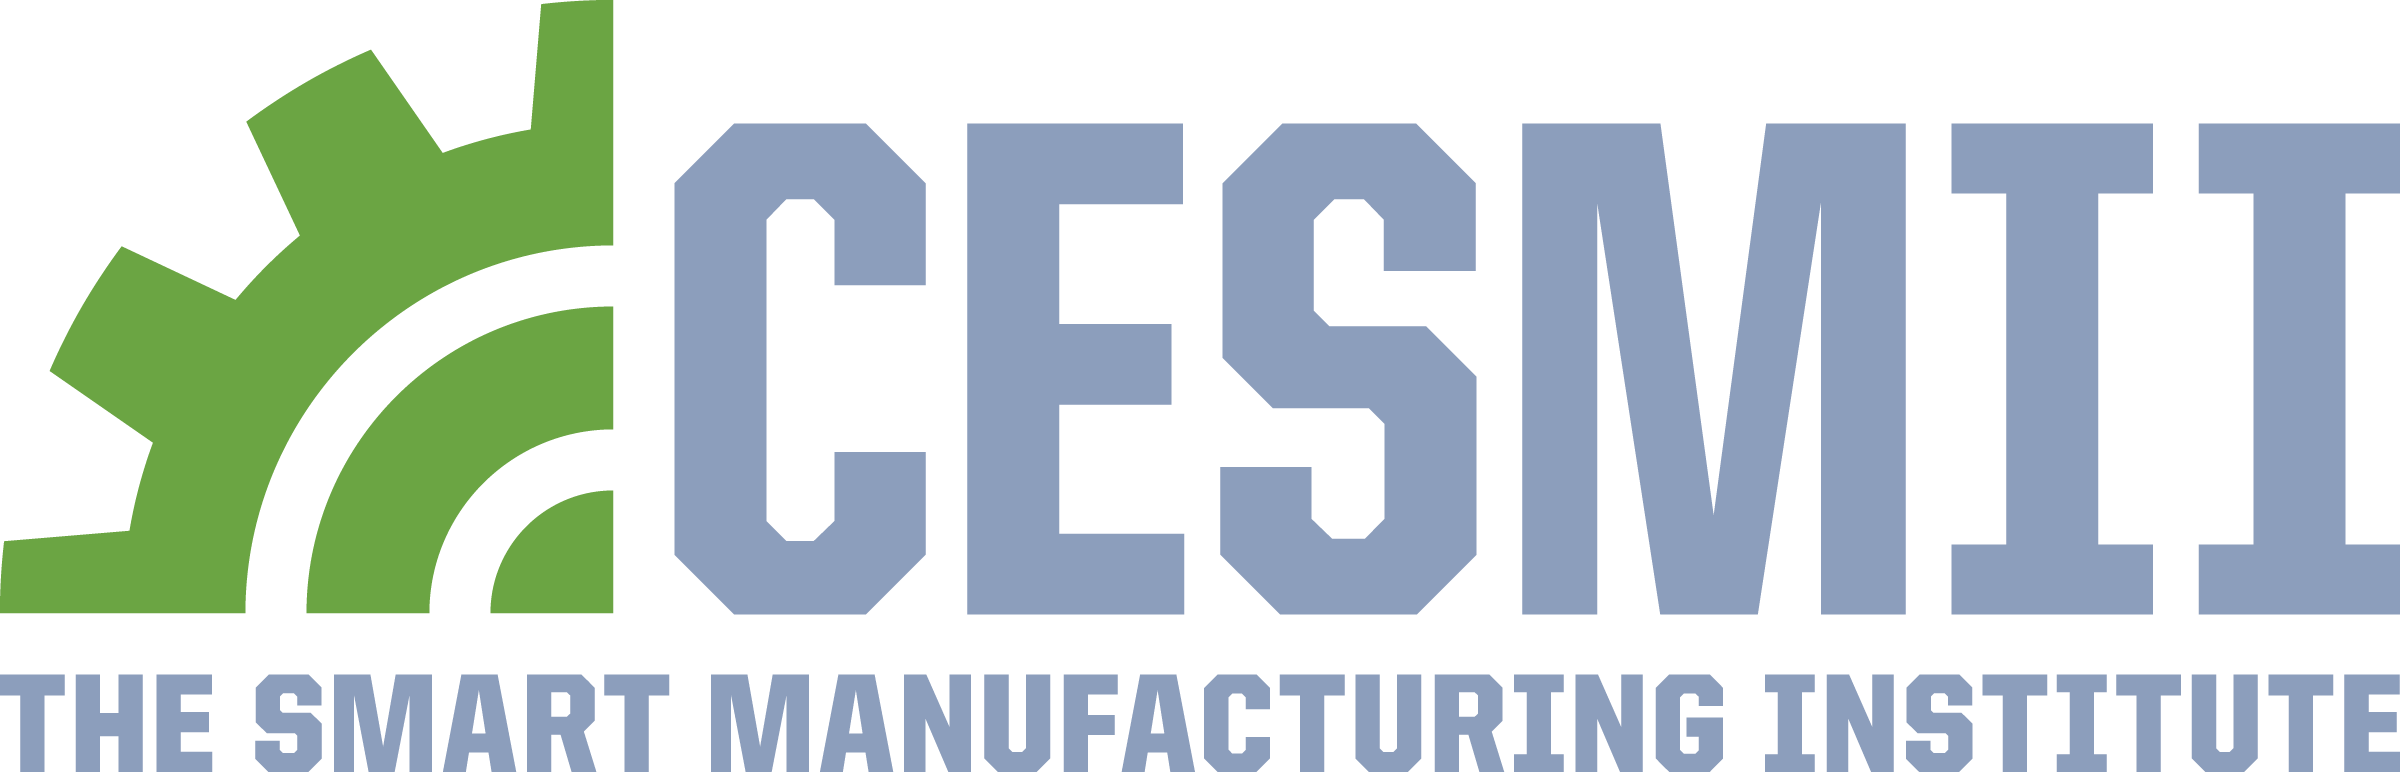 CESMII - The Smart Manufacturing Institute